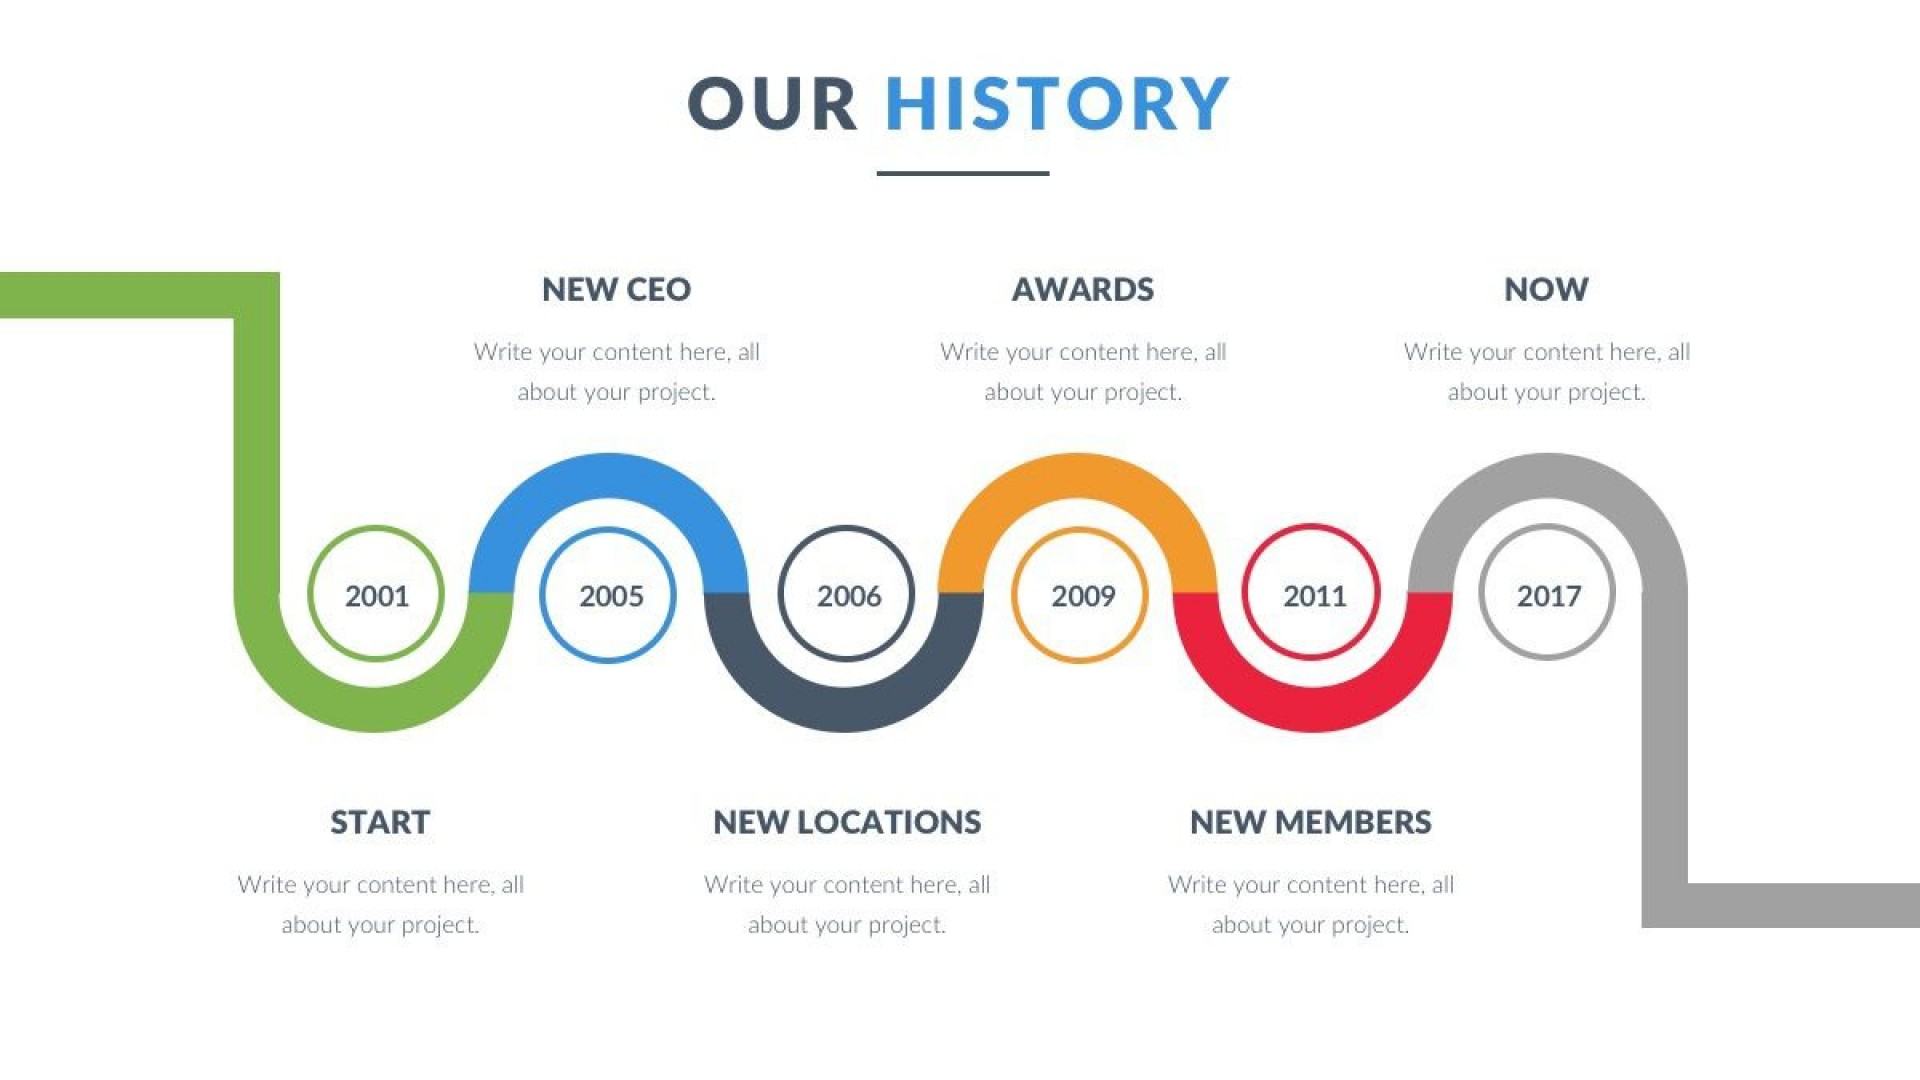 009 Fantastic Timeline Template Pptx Highest Clarity  Powerpoint Project1920